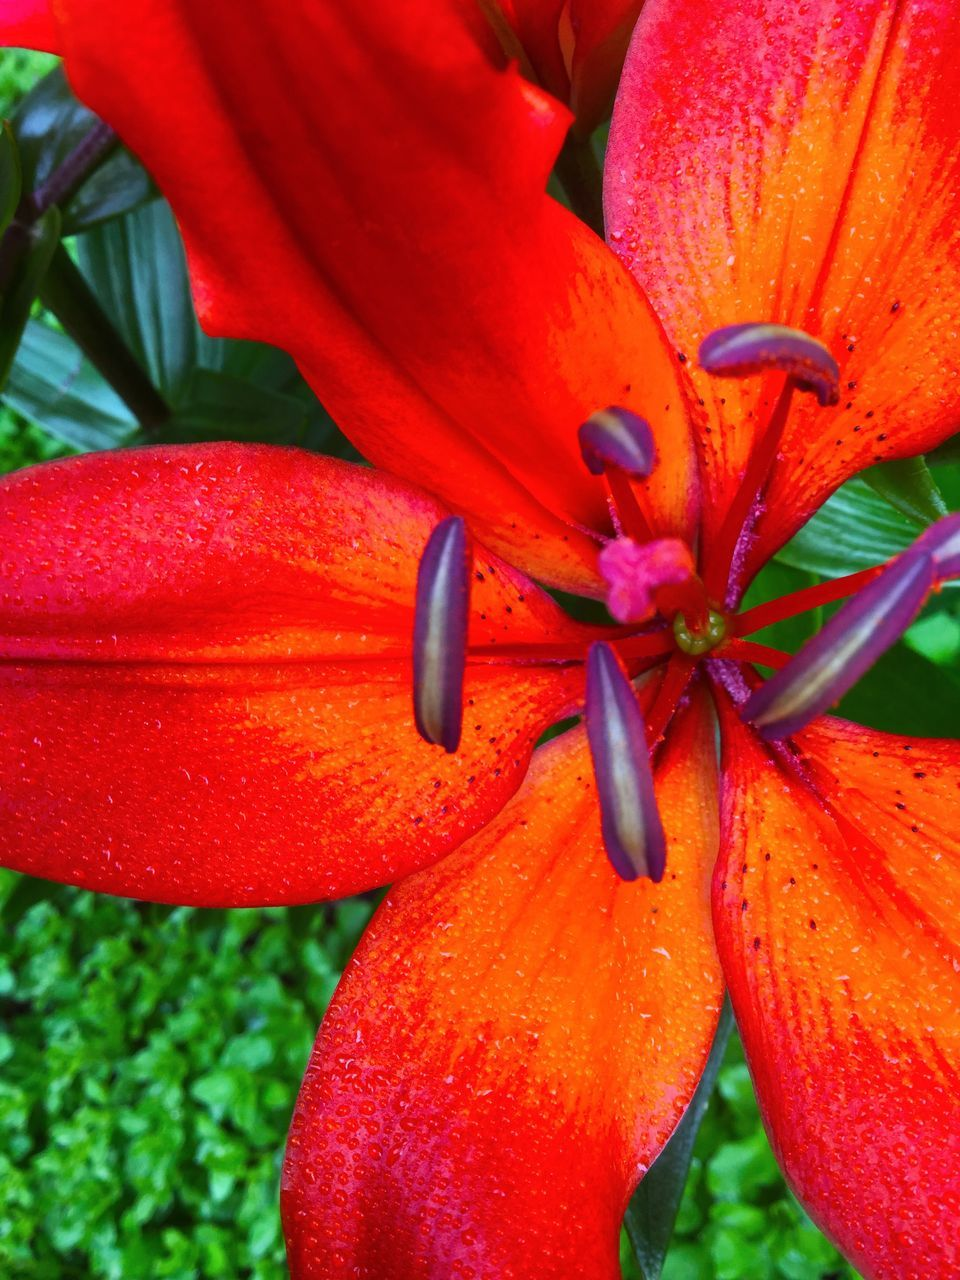 growth, orange color, beauty in nature, freshness, flower, red, nature, petal, no people, outdoors, day, flower head, plant, close-up, fragility, blooming, day lily